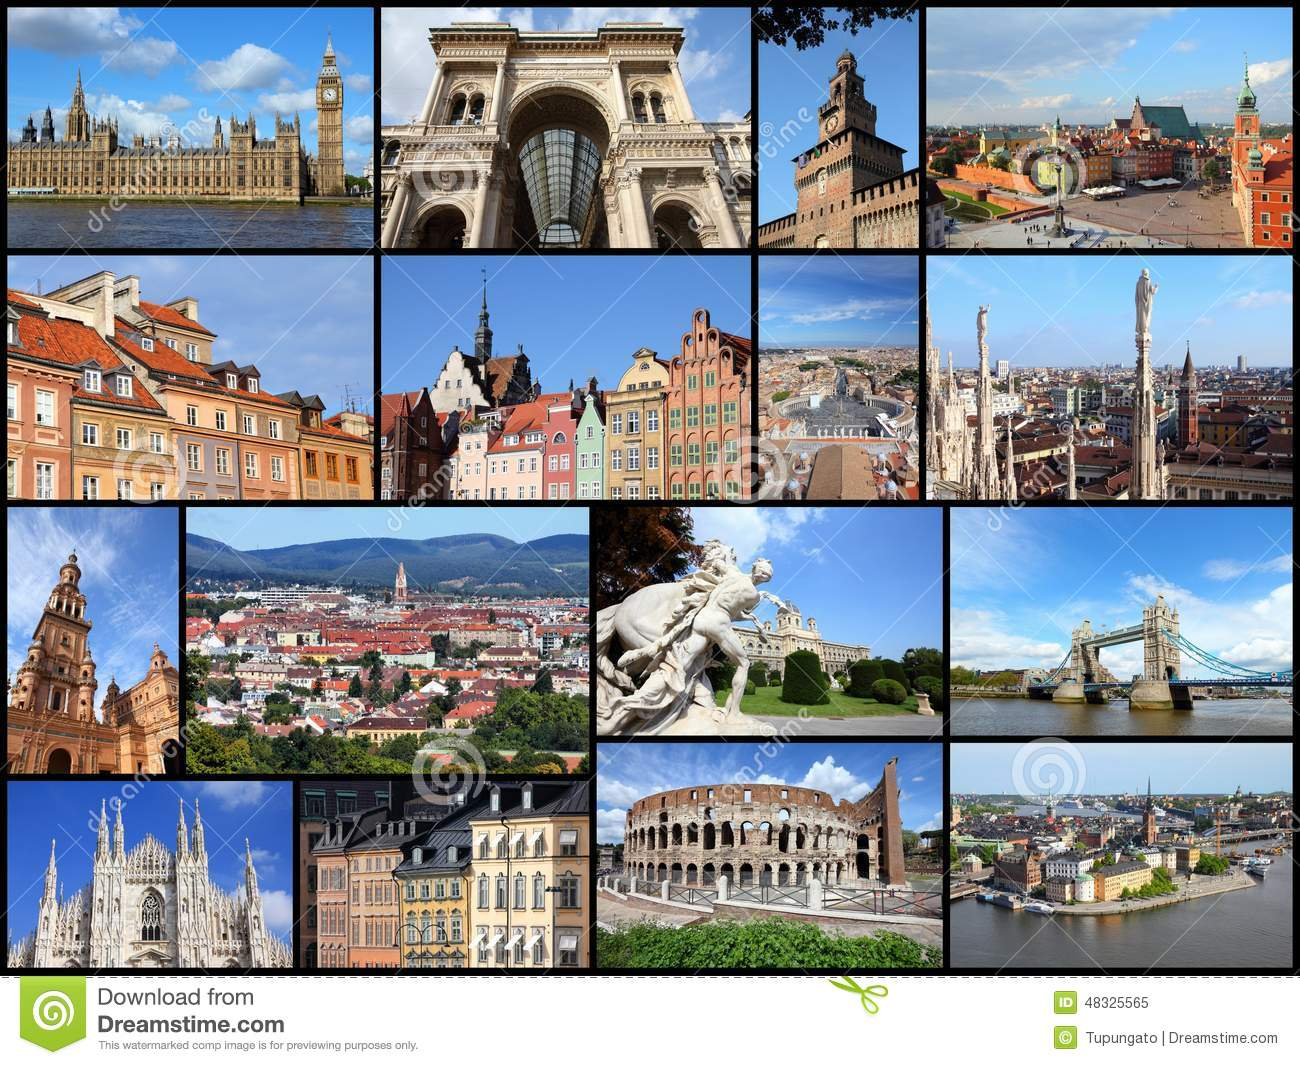 Mr Italy Tours